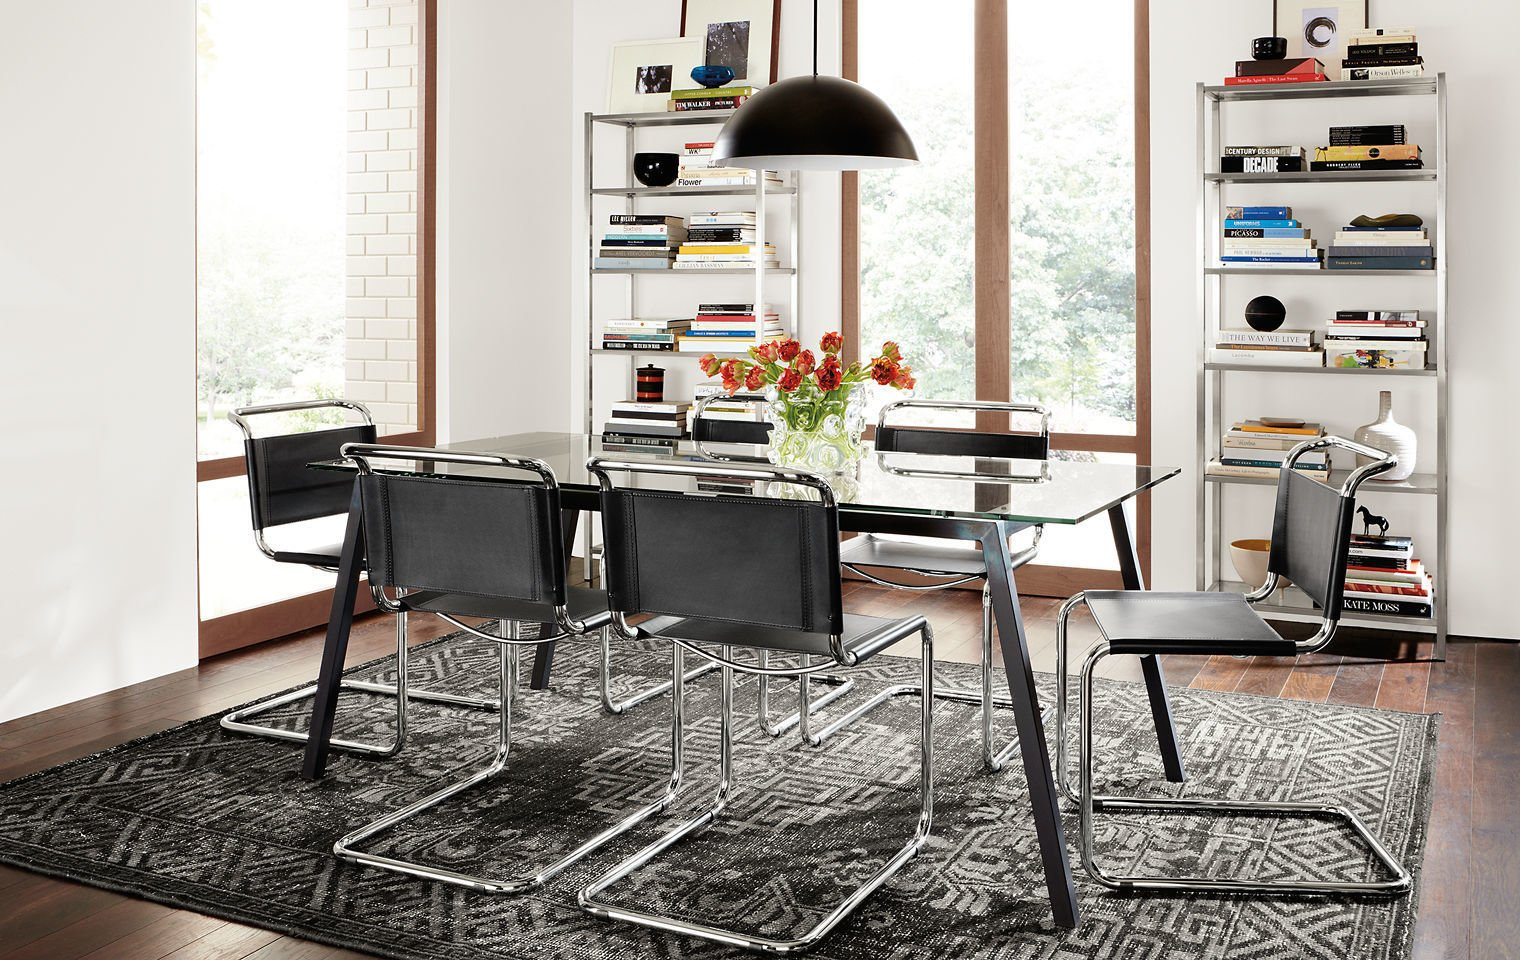 office by novo weimar from modern dining furniture